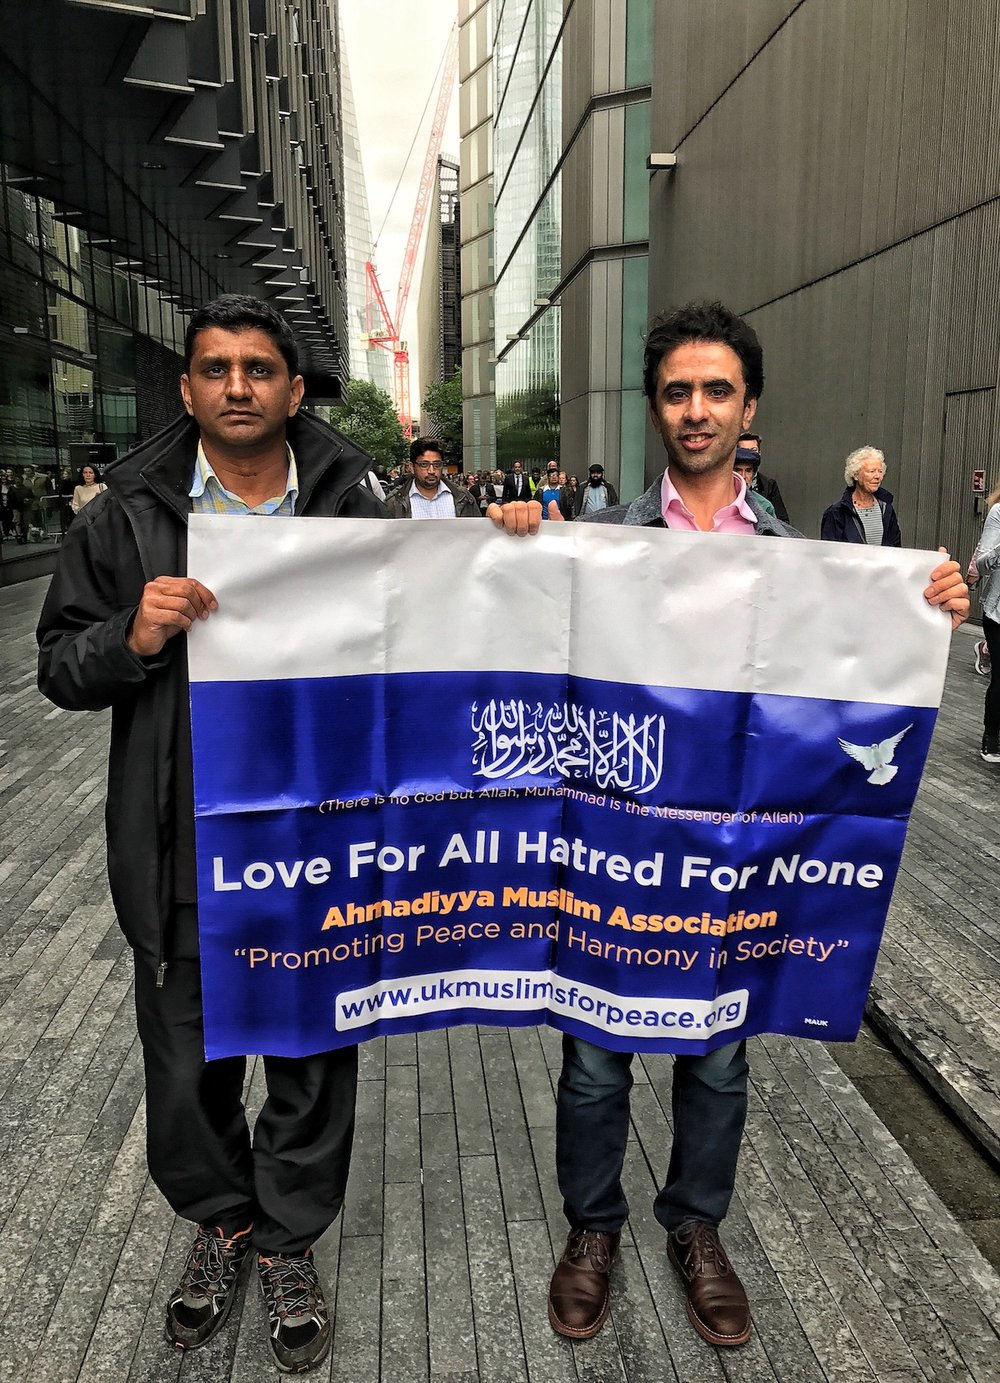 Two Muslim men carrying a sign, Love For All, Hatred For None